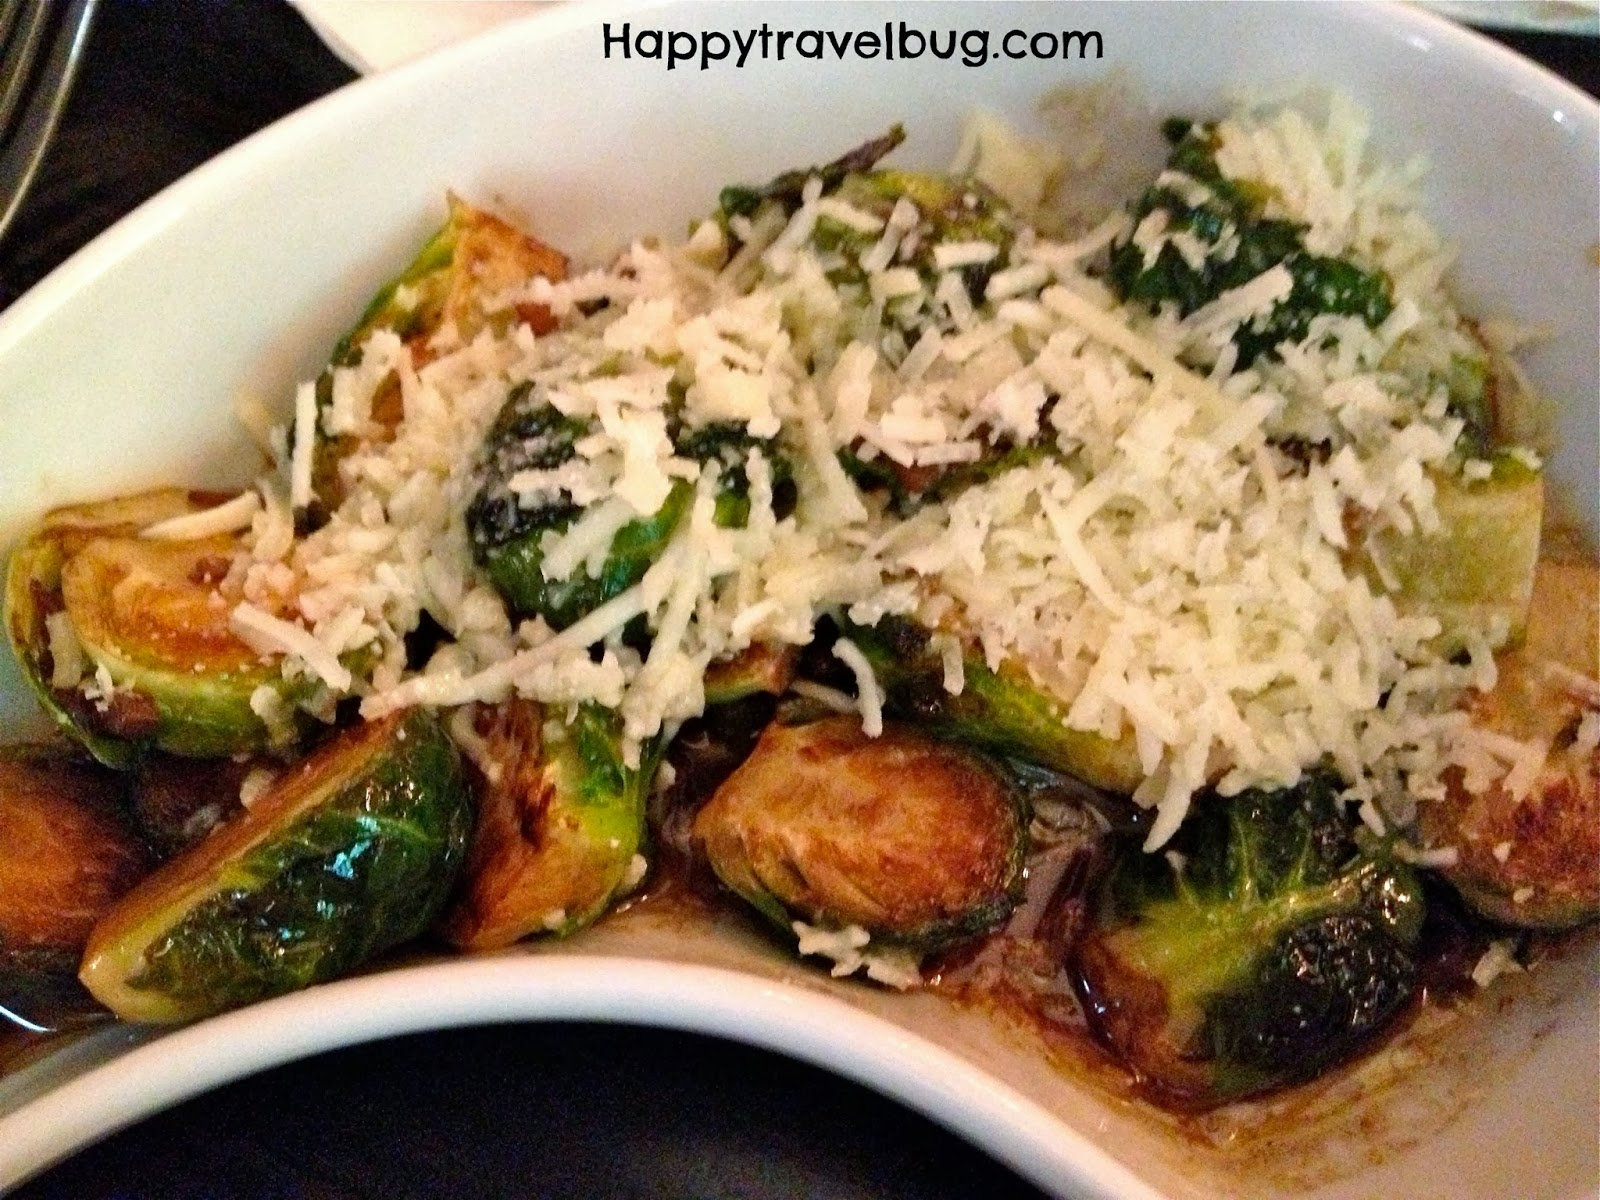 Brussels sprouts with brown butter sauce, capers and cheese